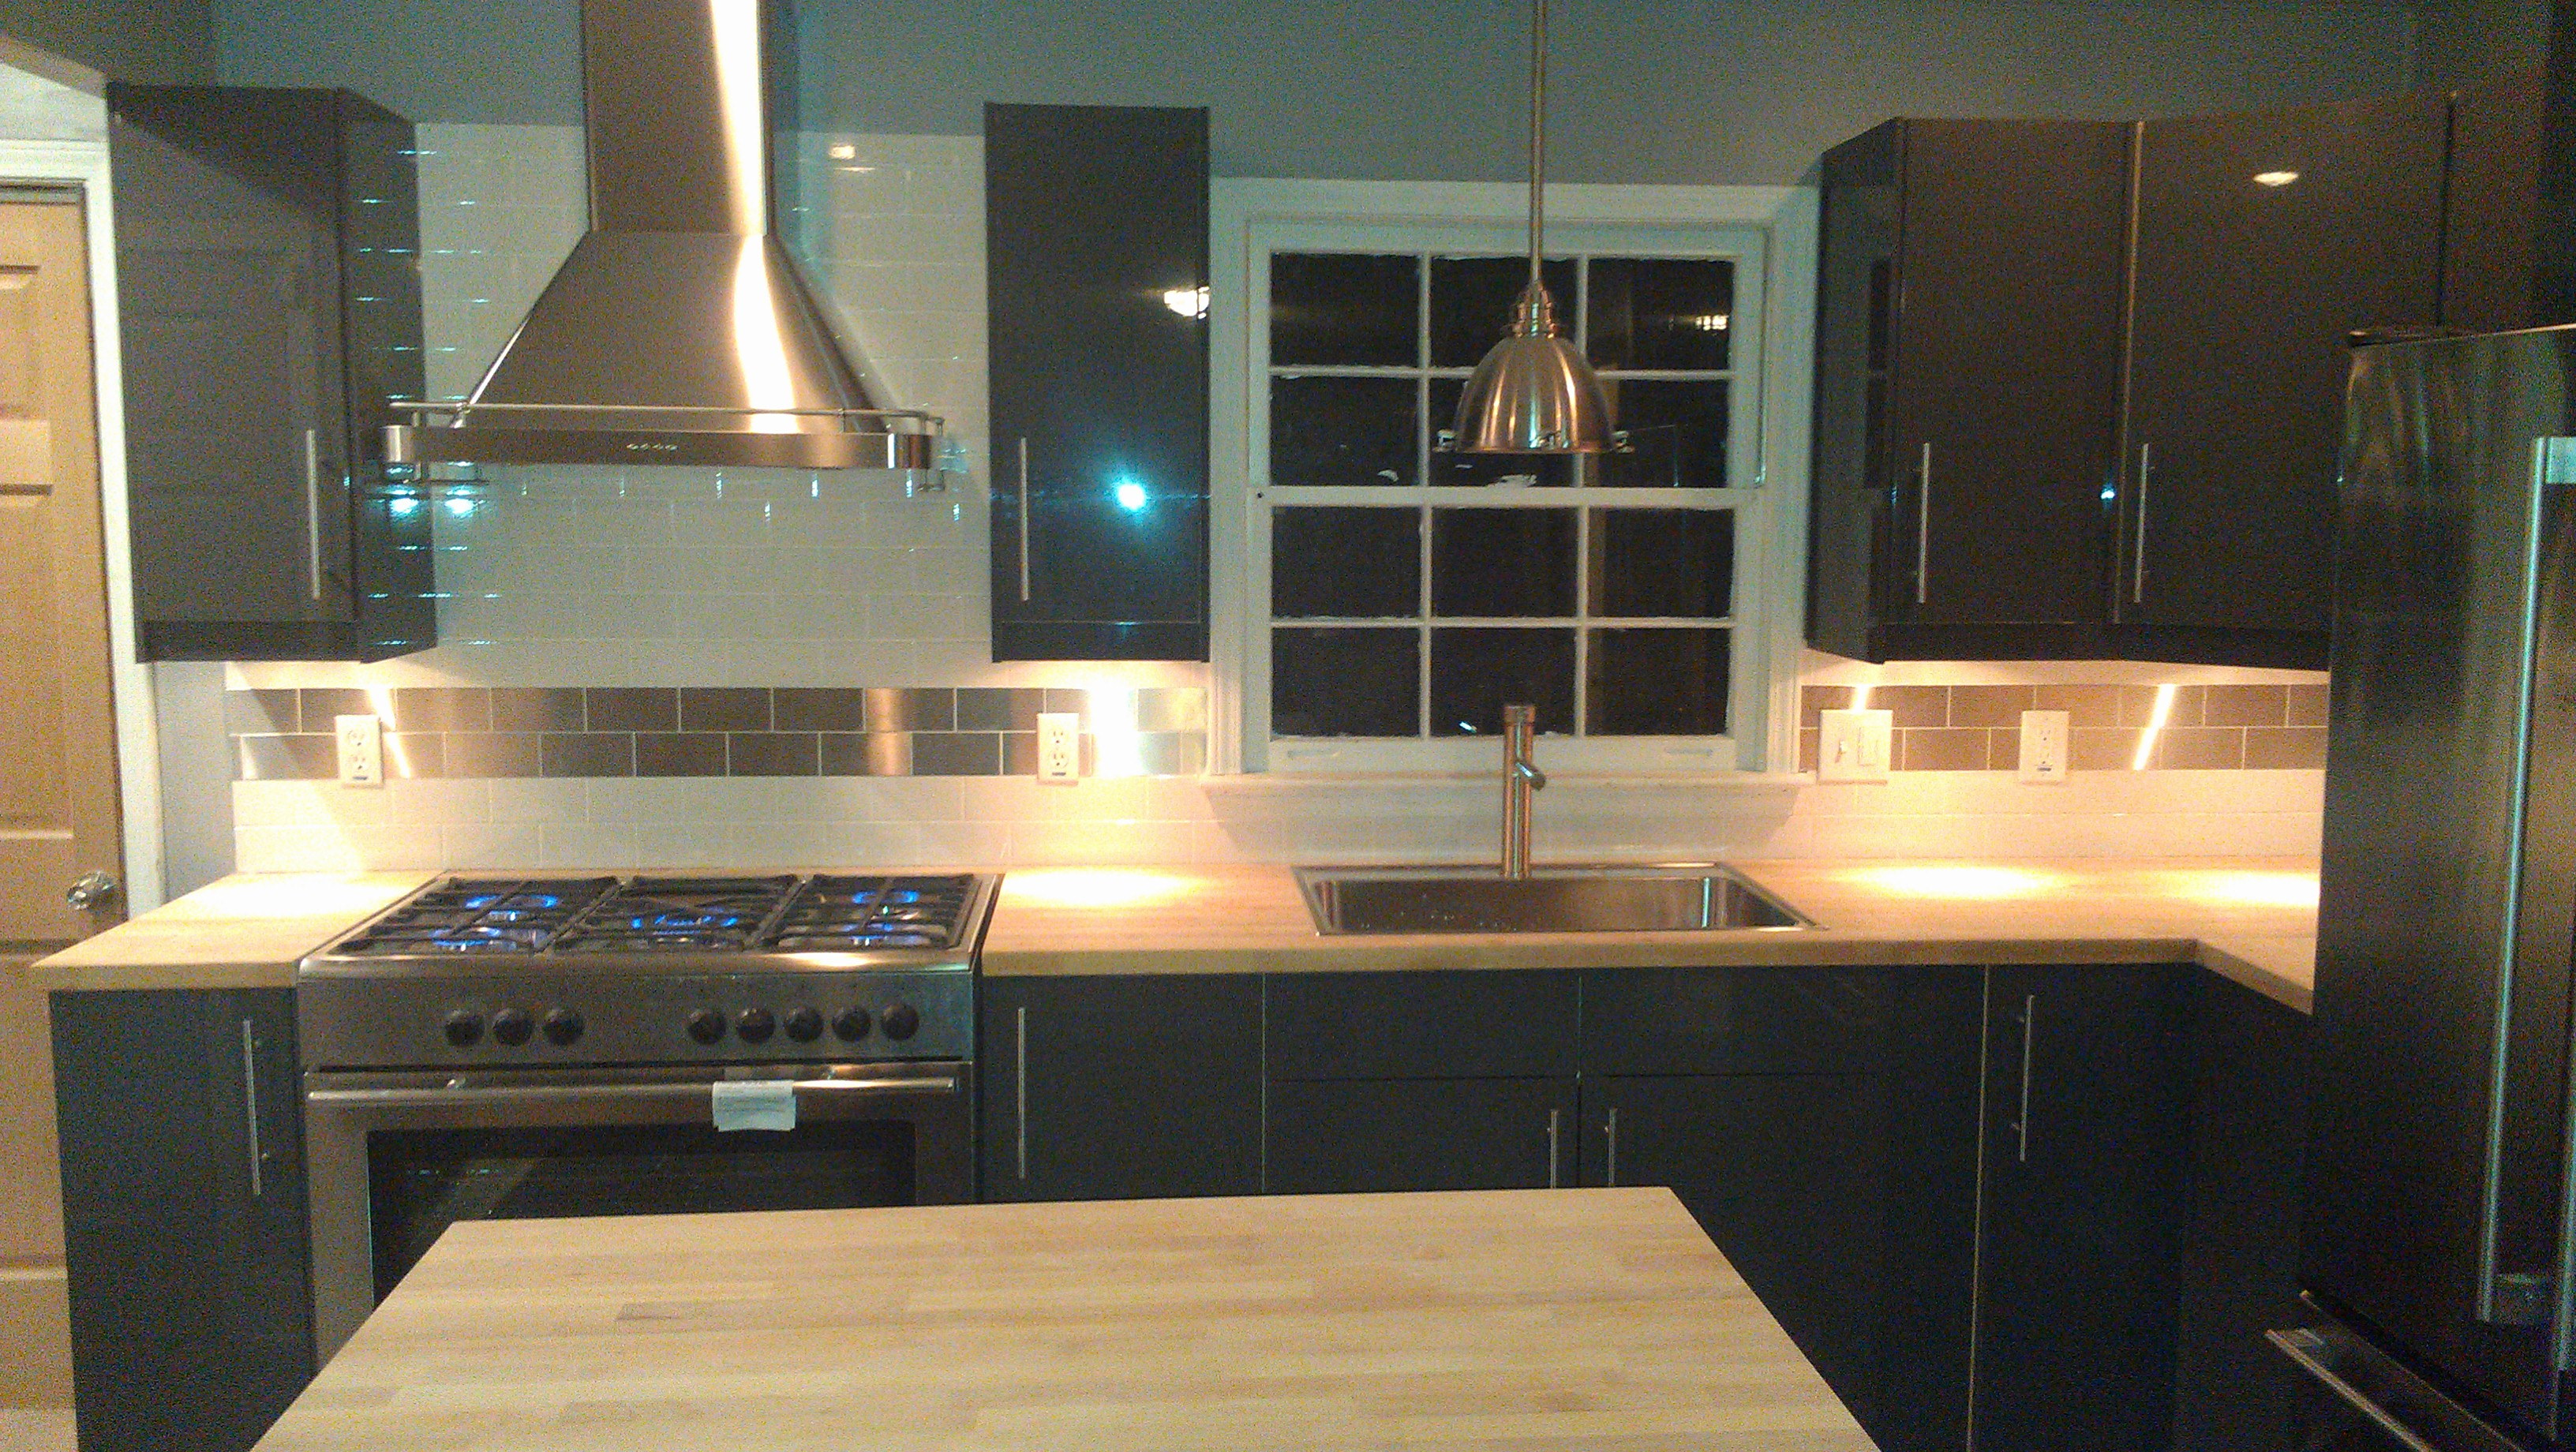 Peachy Mccrossin Industries Inc Ikea Kitchen Installation Beutiful Home Inspiration Ommitmahrainfo